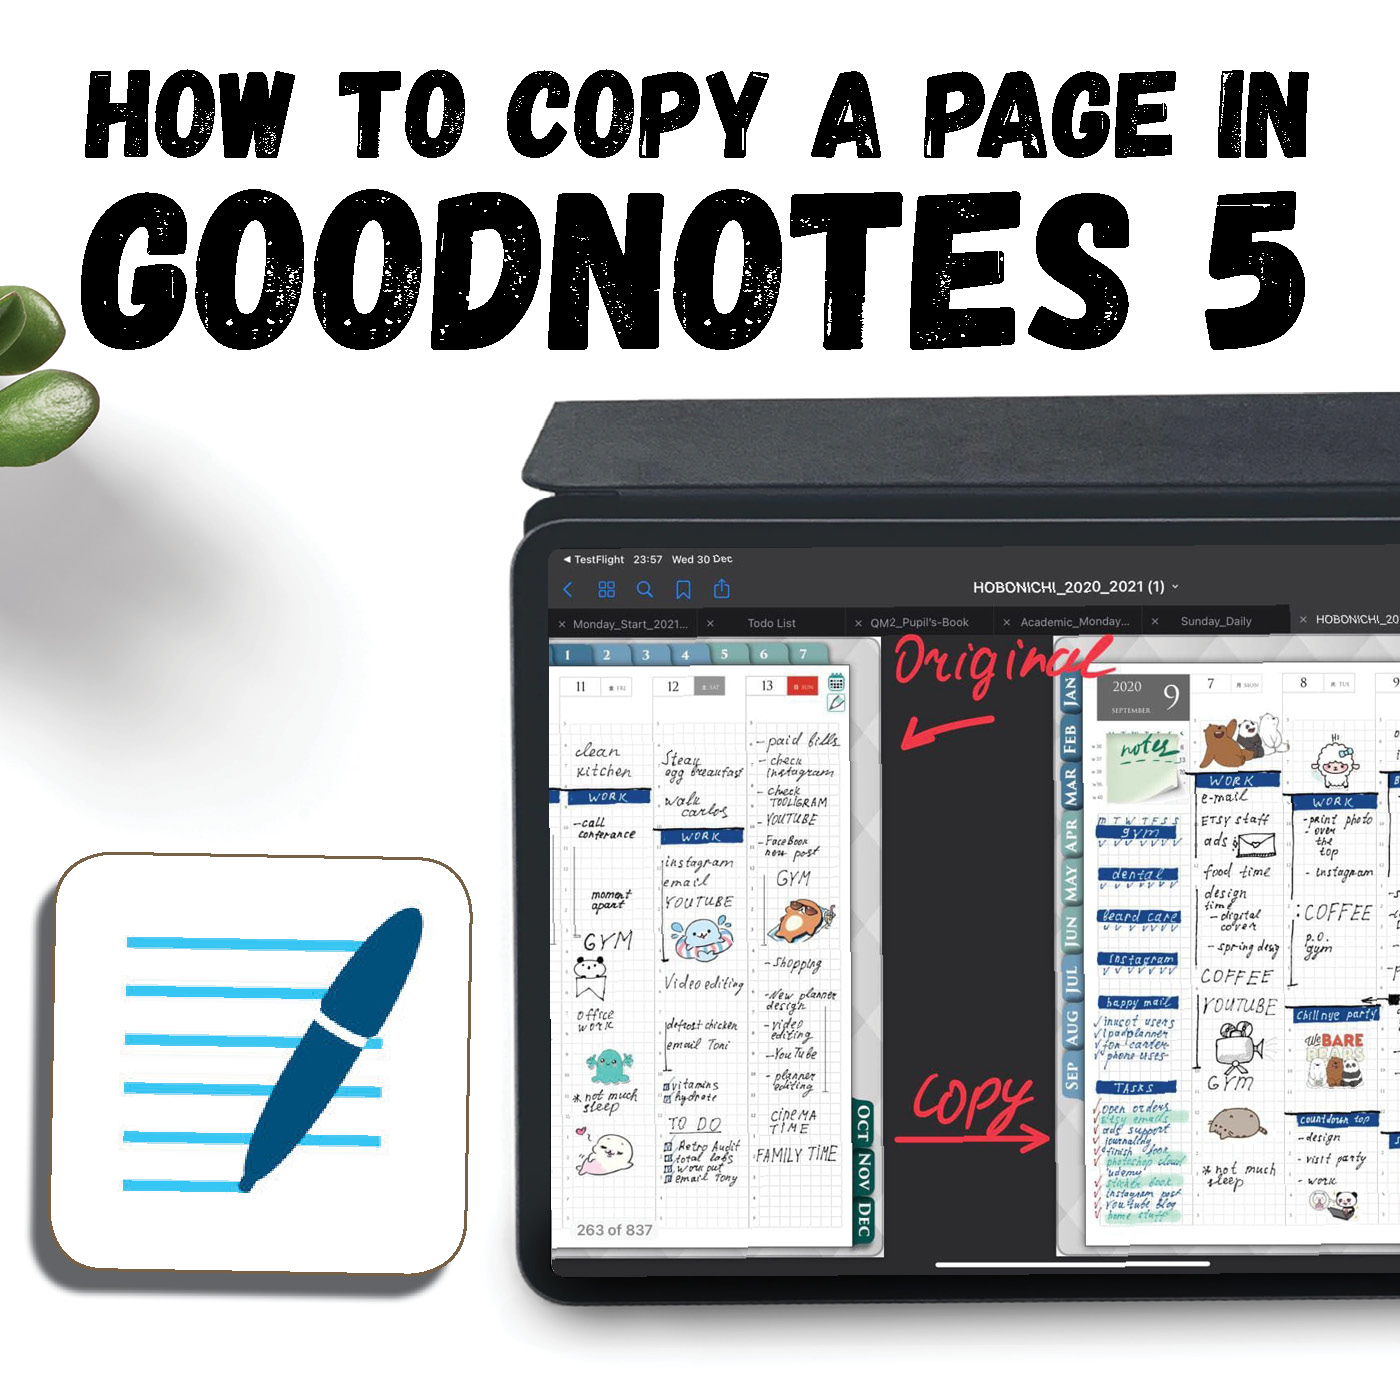 HOW TO COPY A PAGE IN GOODNOTES